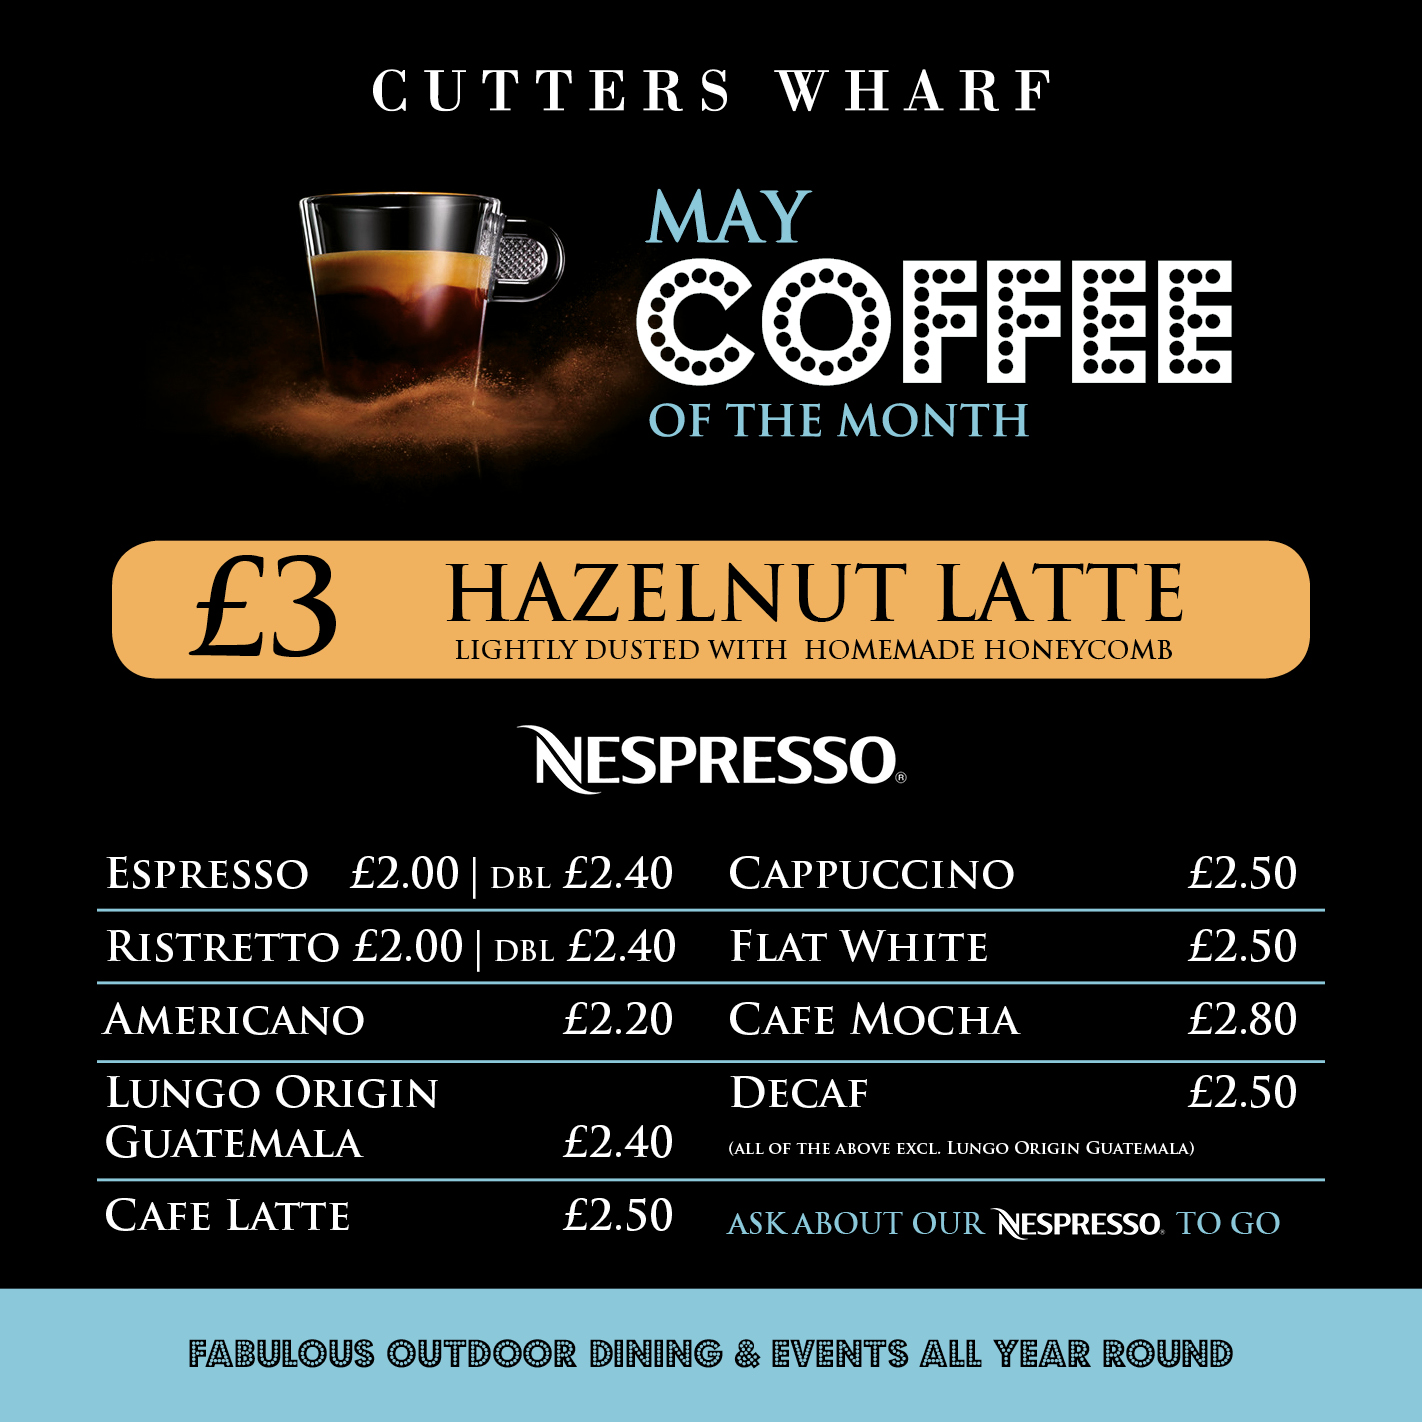 May-Coffee-of-the-Month-Nespresso-Social